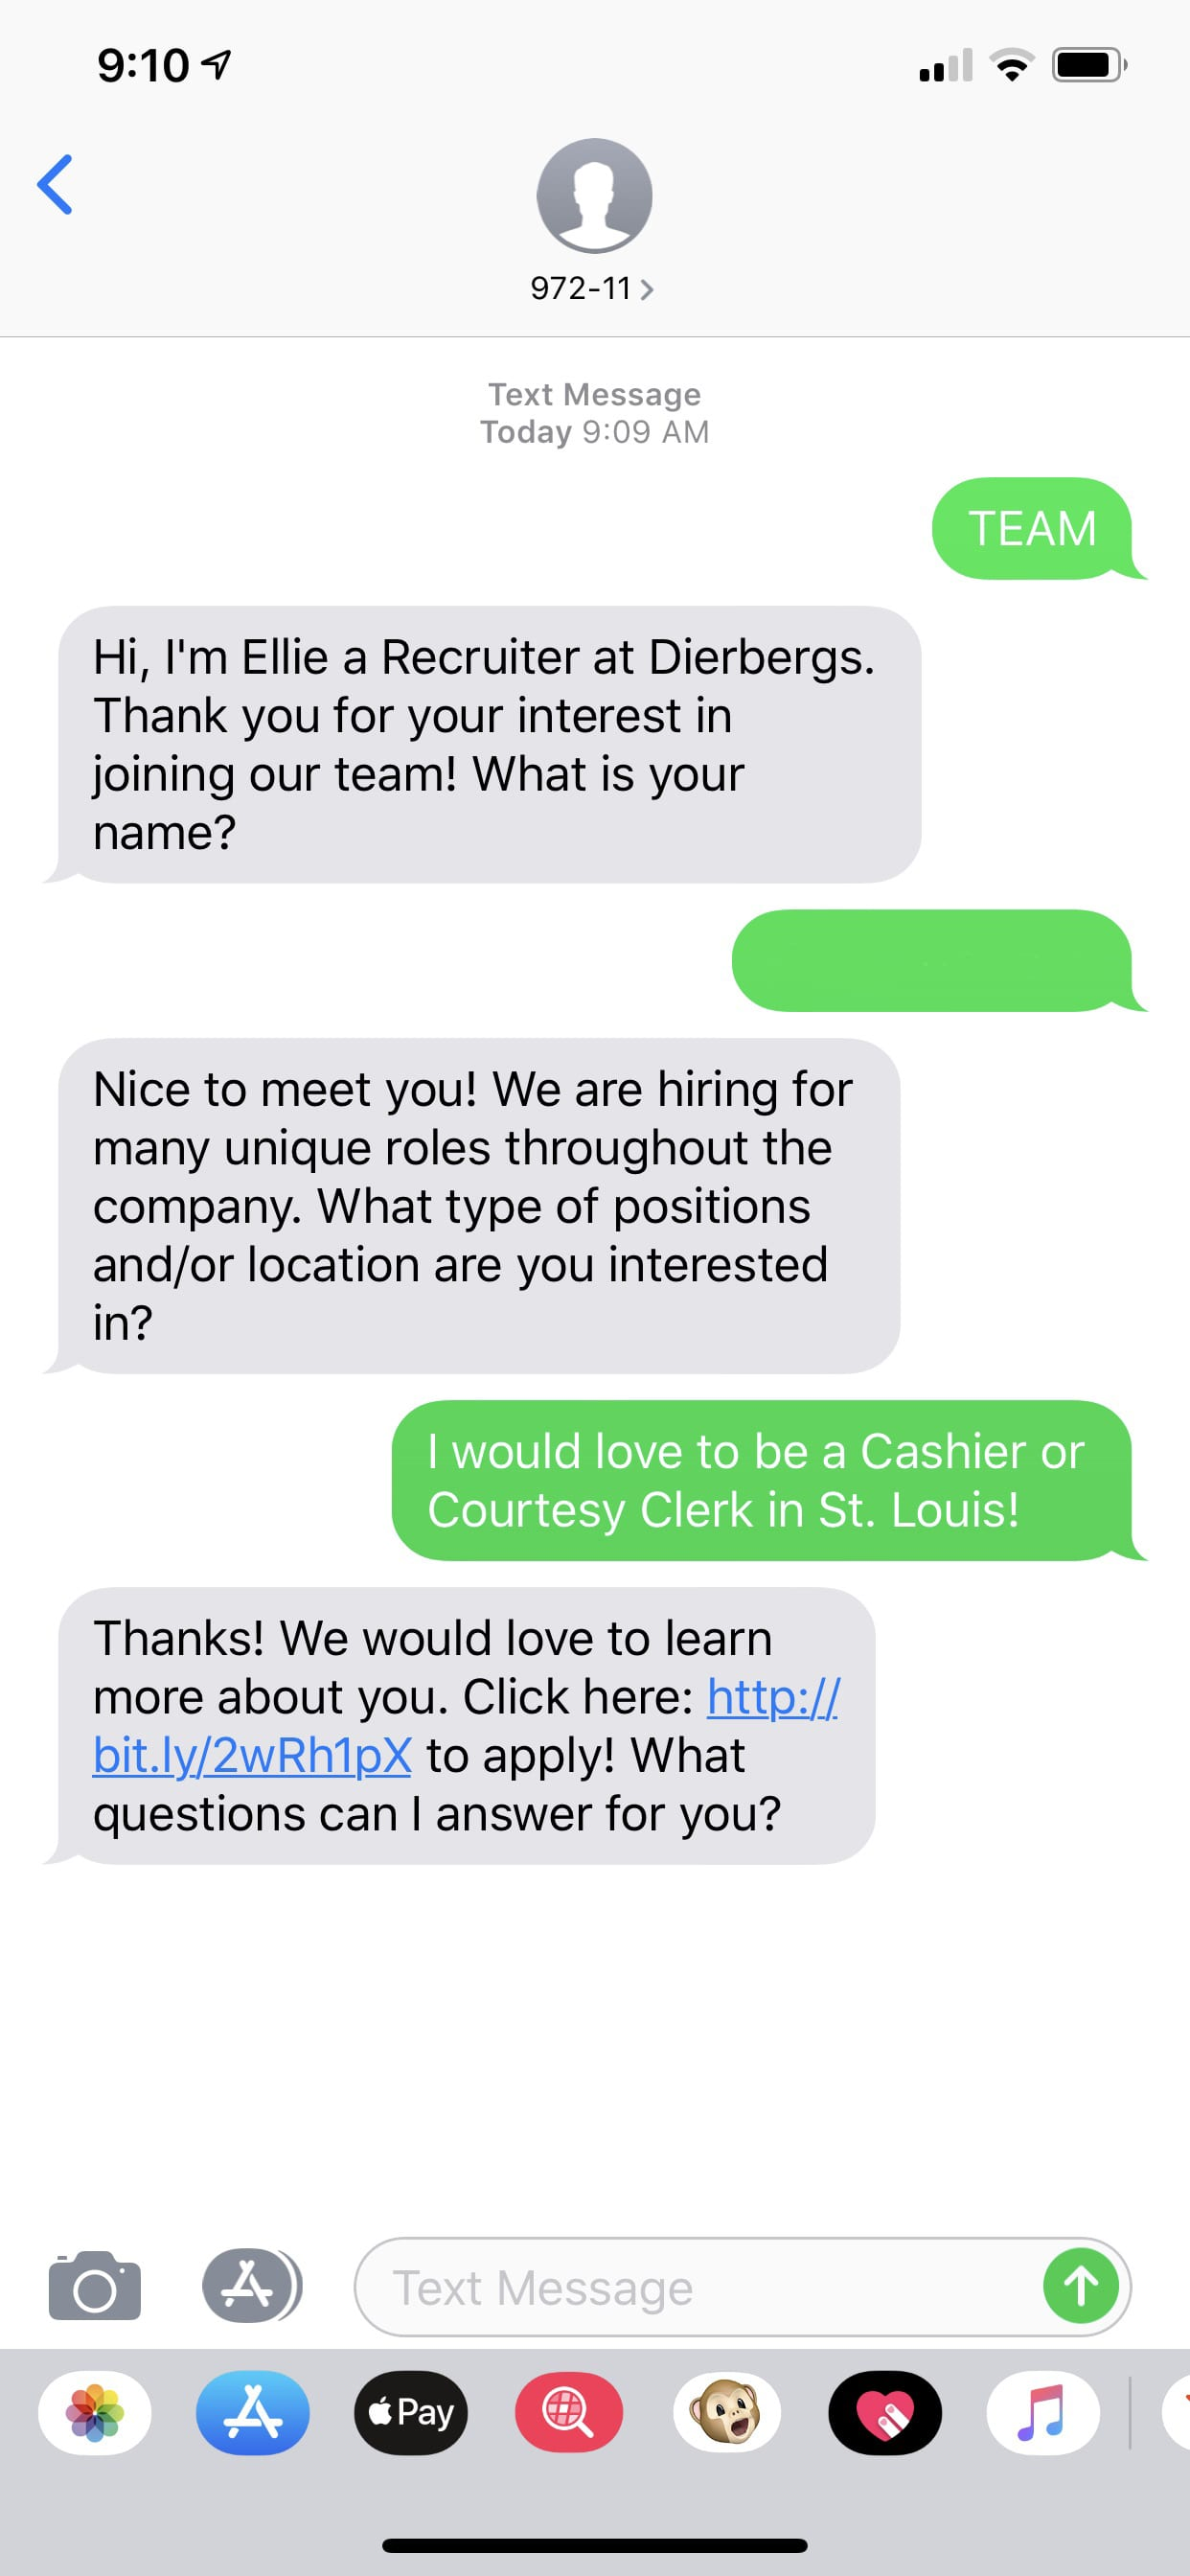 Text message conversation between employee and an automated recruiter assistant